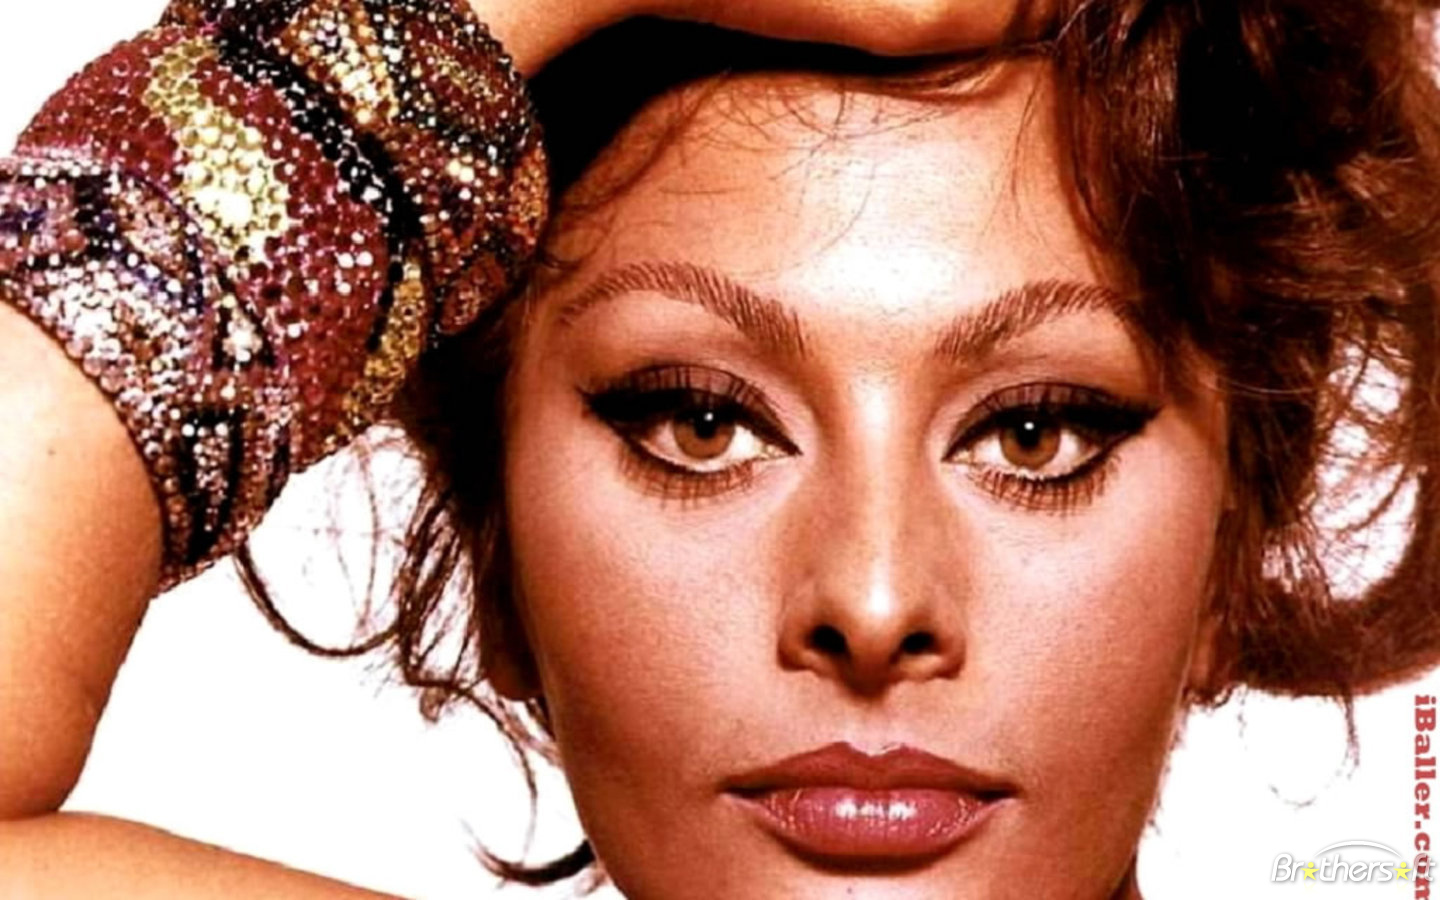 http://4.bp.blogspot.com/-eKVflnm45NA/T3n6MSazEHI/AAAAAAAABpw/wE1V-9K4Y8M/s1600/sophia_loren_on_stage_wallpaper-406279-1284952324.jpg